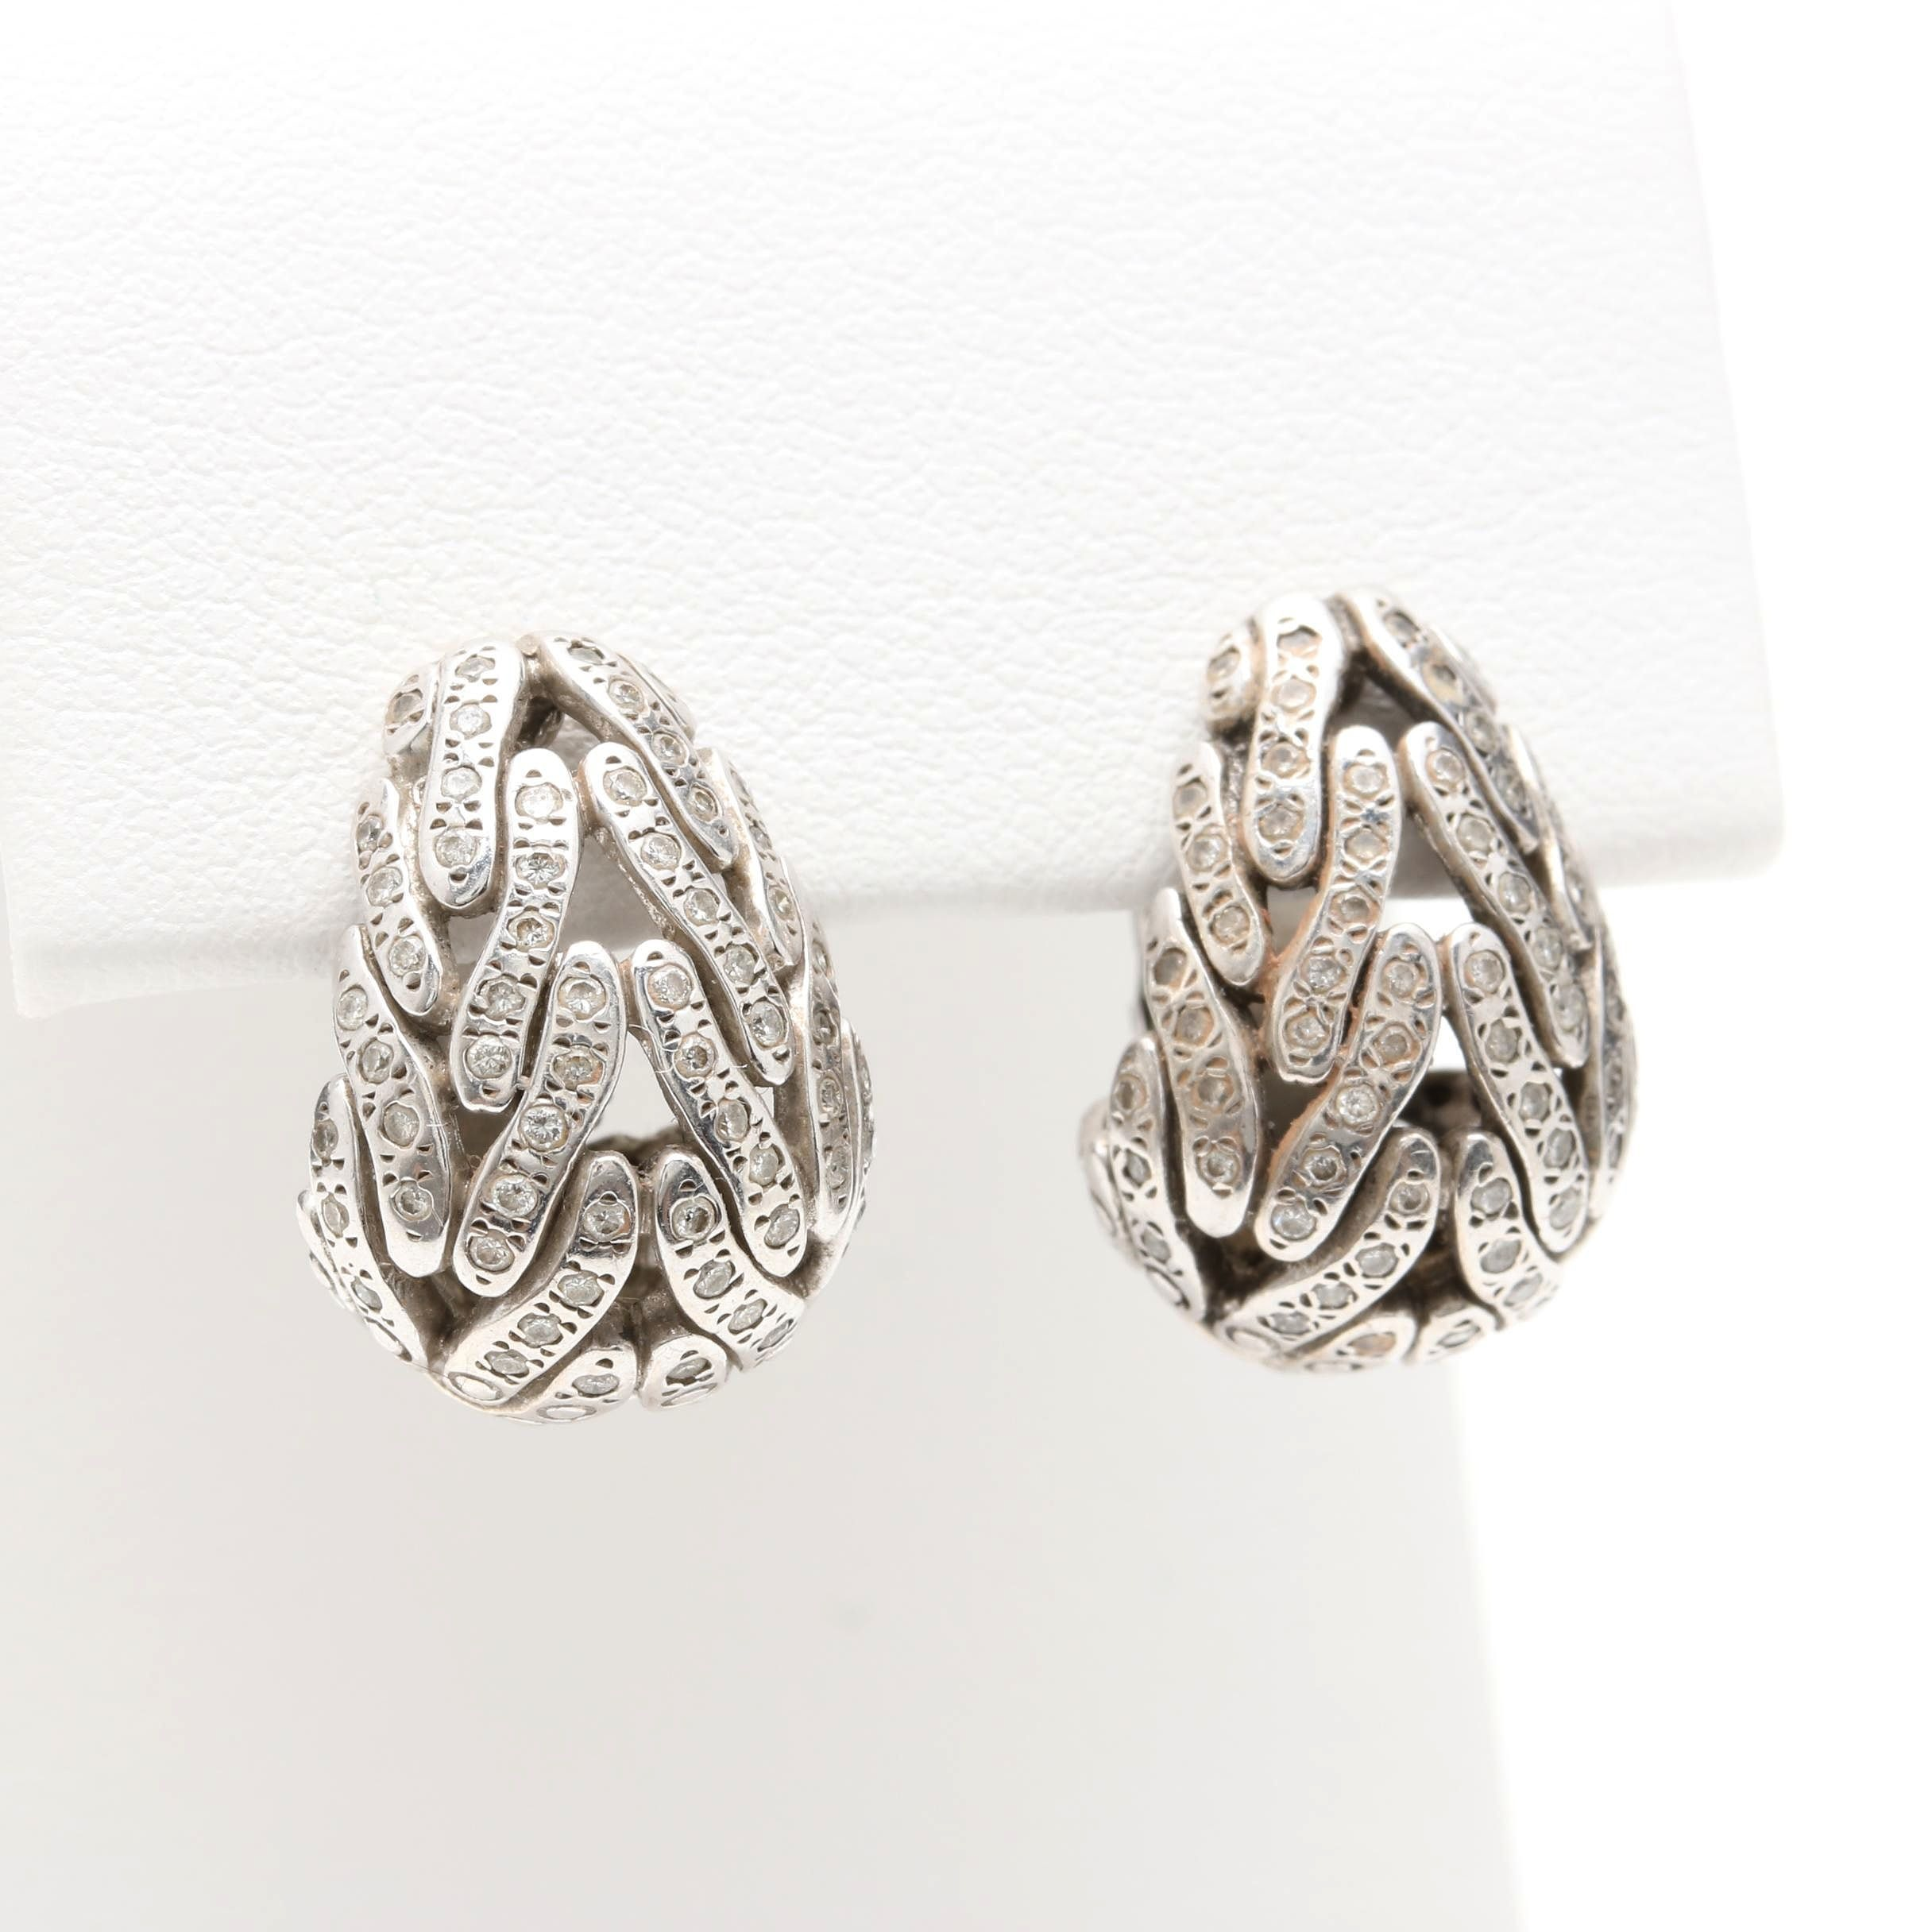 John Hardy Sterling Silver Diamond Earrings with 18K Yellow Gold Accents